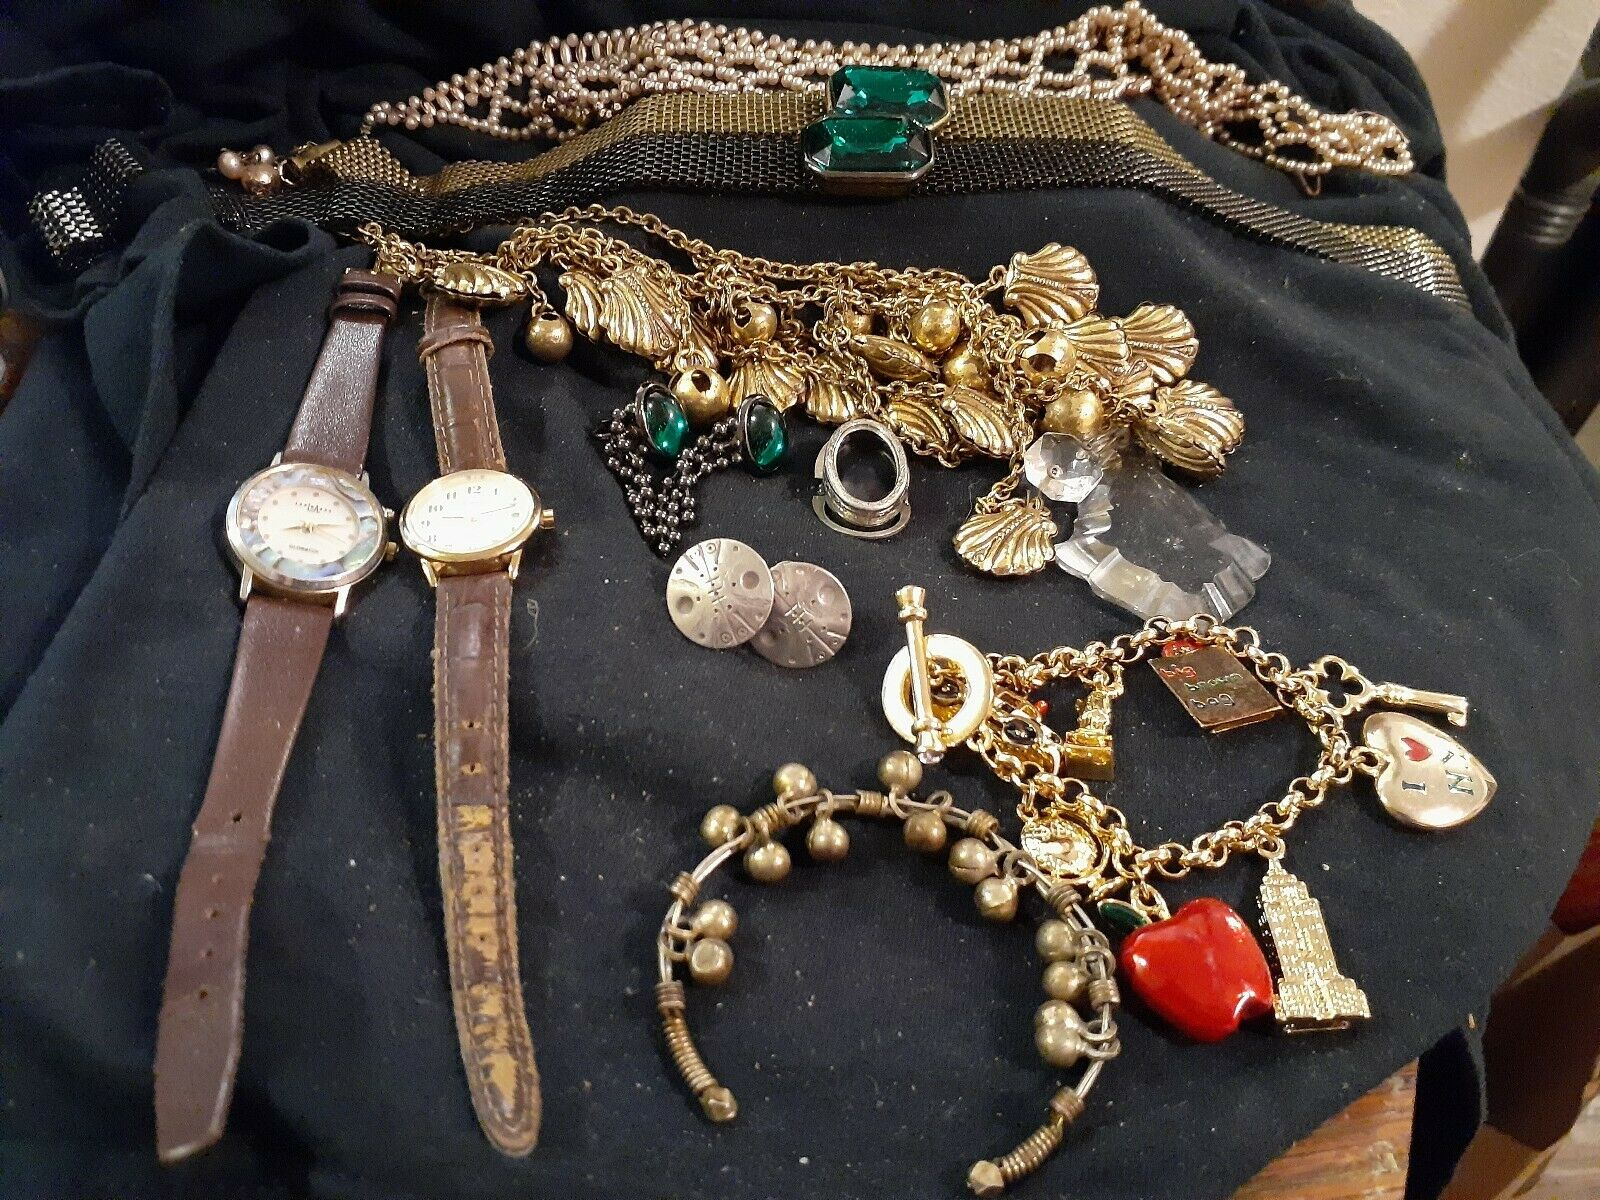 LOT OF VINTAGE COSTUME JEWELRY WATCHES CHARM BRAC… - image 1